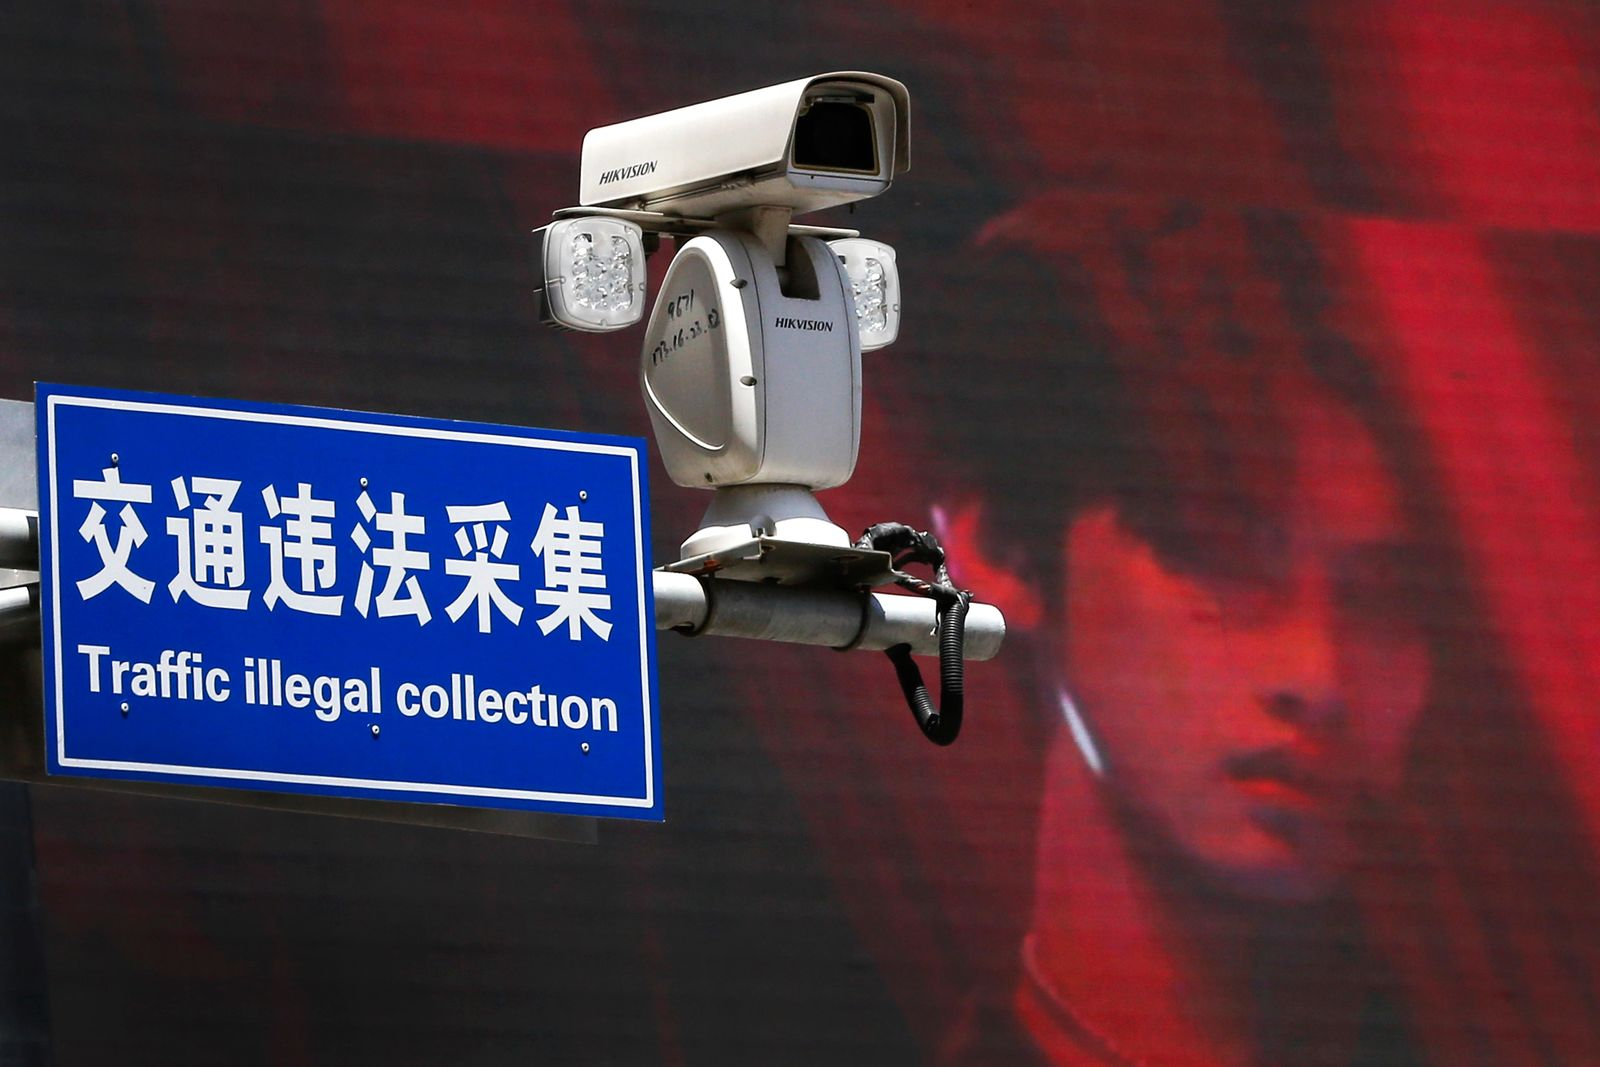 A surveillance camera made by China's Hikvision is mounted on top of a street against a huge TV screen in Beijing, Thursday, May 23, 2019. The Chinese video surveillance company says it is taking concern about the use of its technology seriously following a report that the U.S. may block several Chinese surveillance companies from buying American components. (AP Photo/Andy Wong)